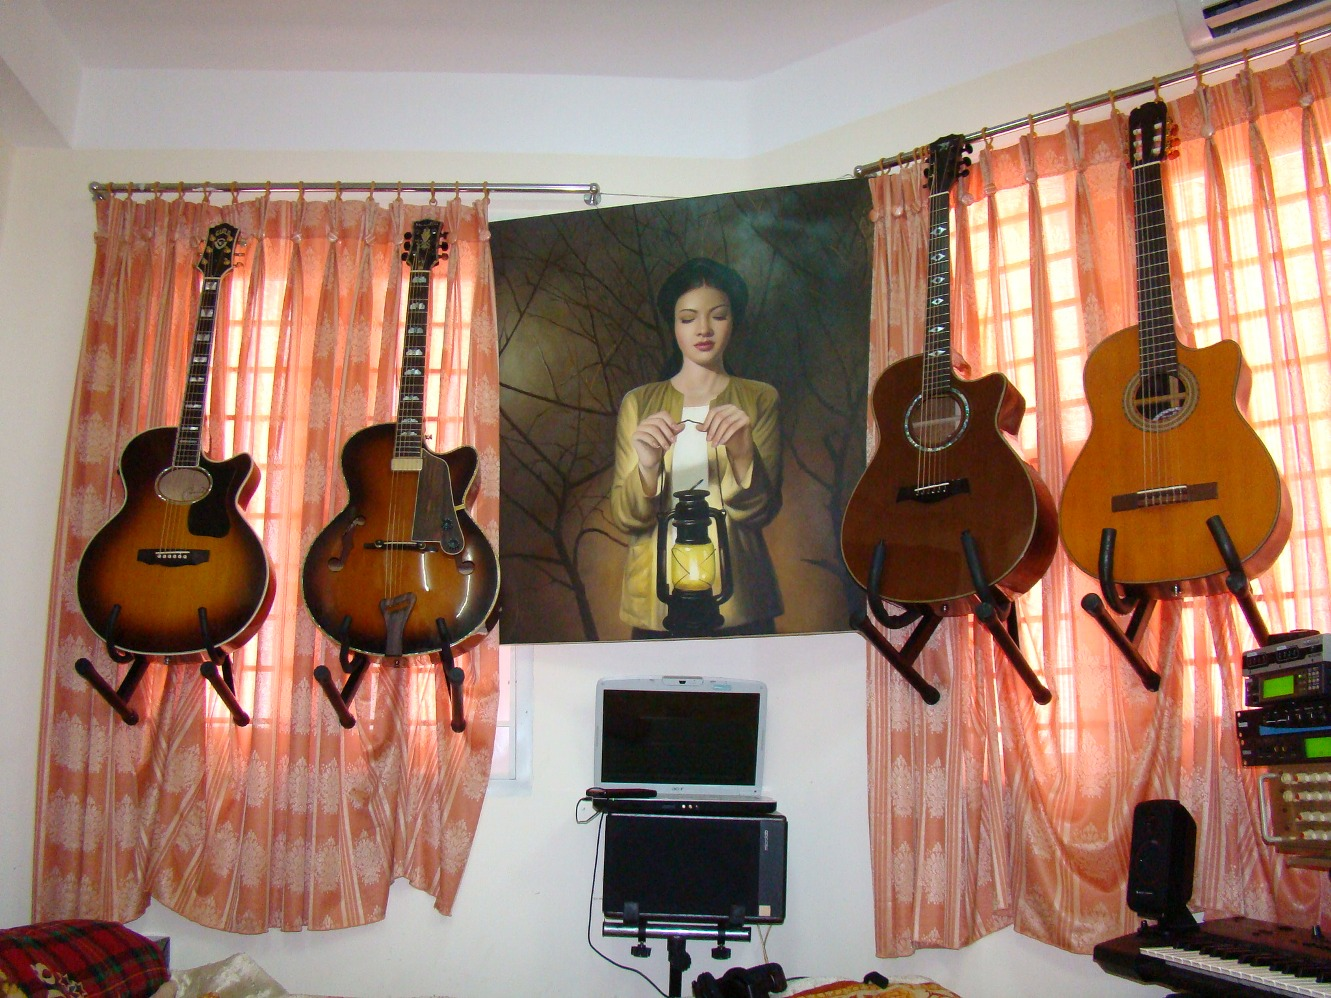 Hang Guitar On Wall how to hang guitars without wall hangers | harmony central